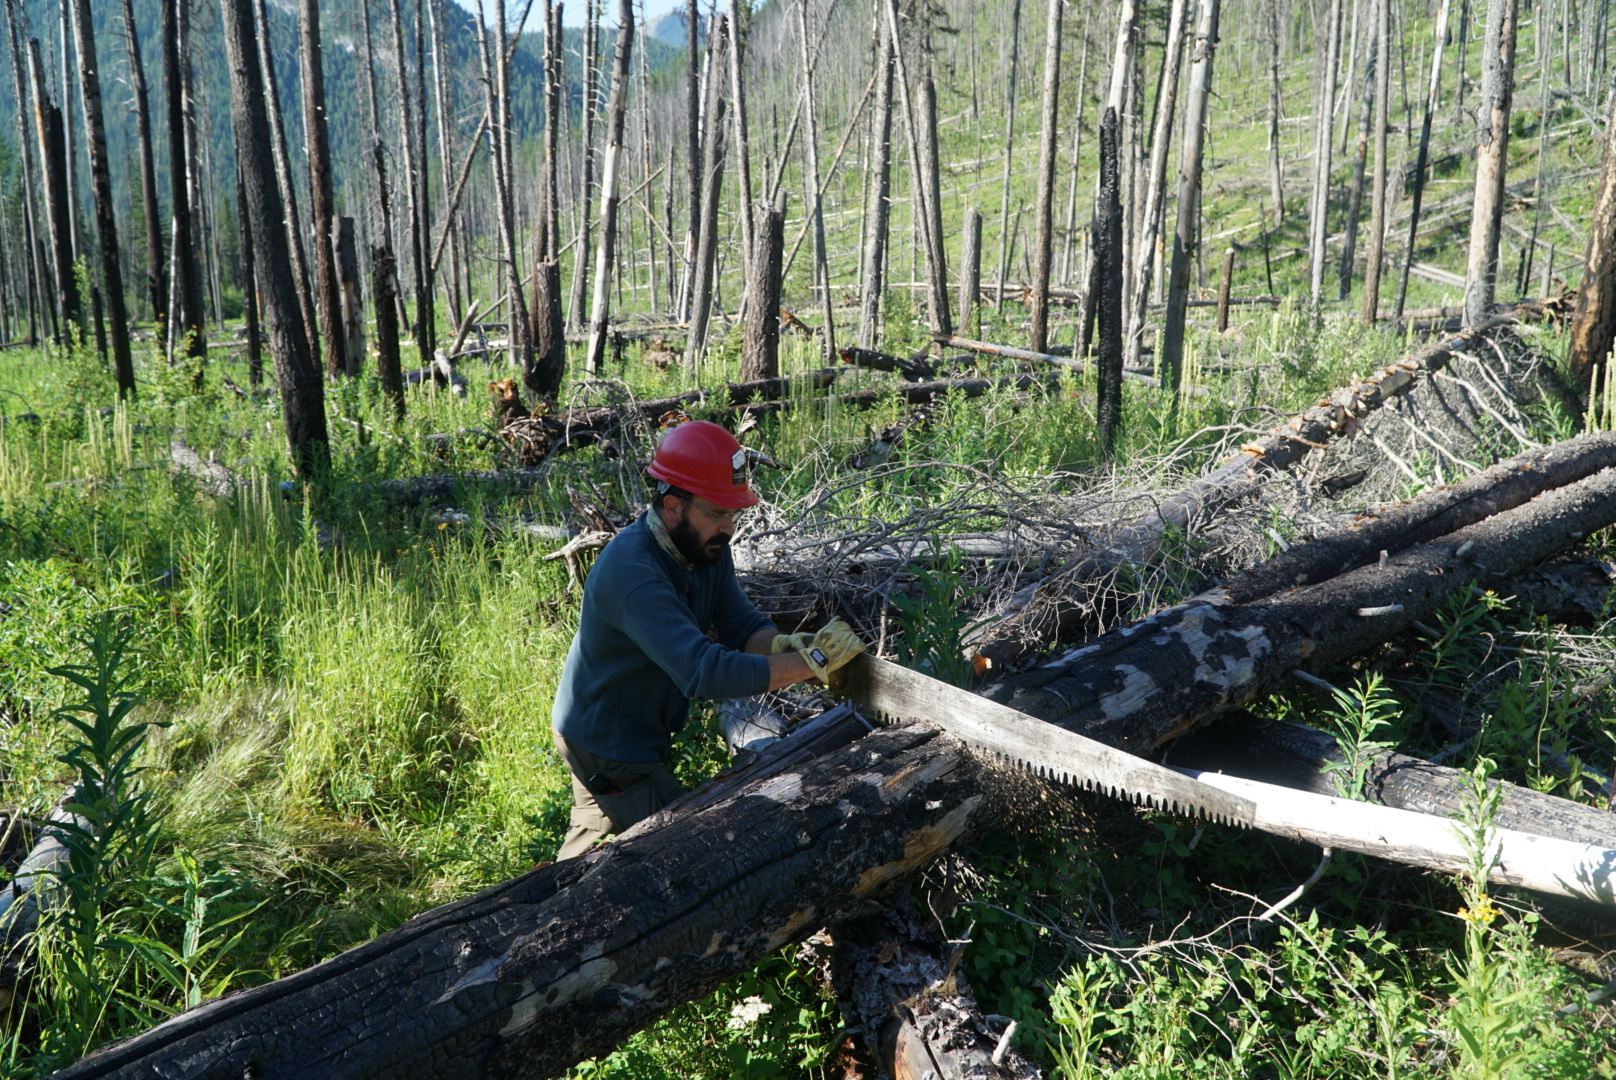 bob-marshall-wilderness-foundation-cutting-down-fallen-trees